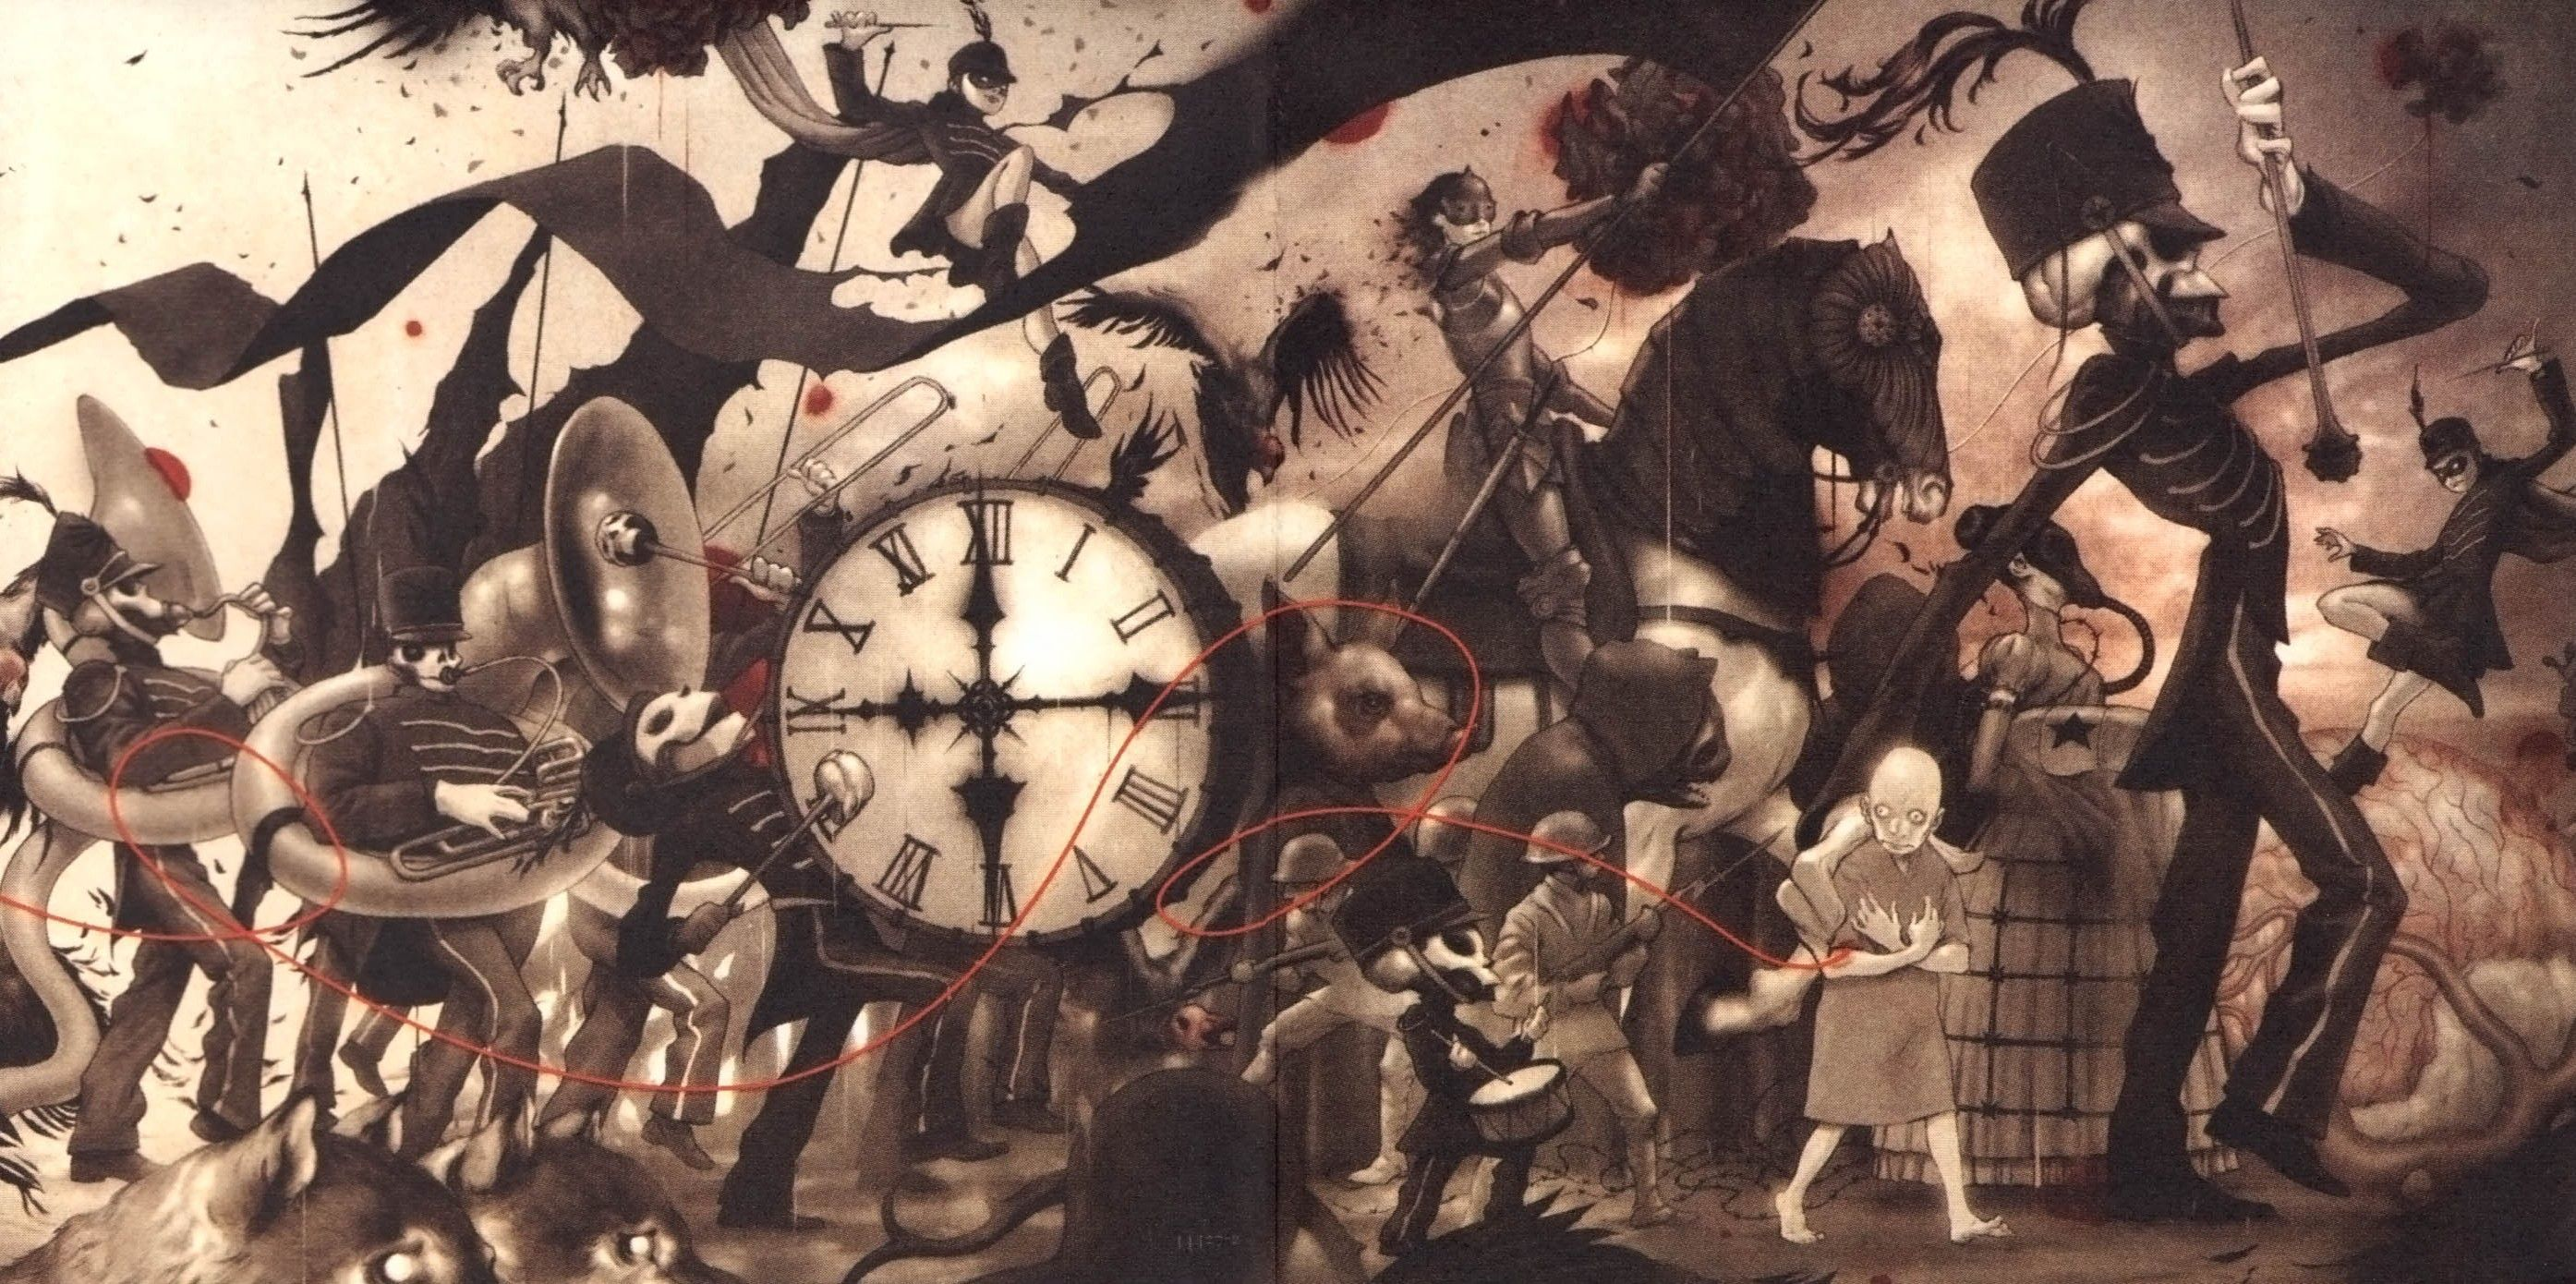 Free Download Animated Wallpapers For Windows 7 Ultimate Download My Chemical Romance The Black Parade Wallpaper